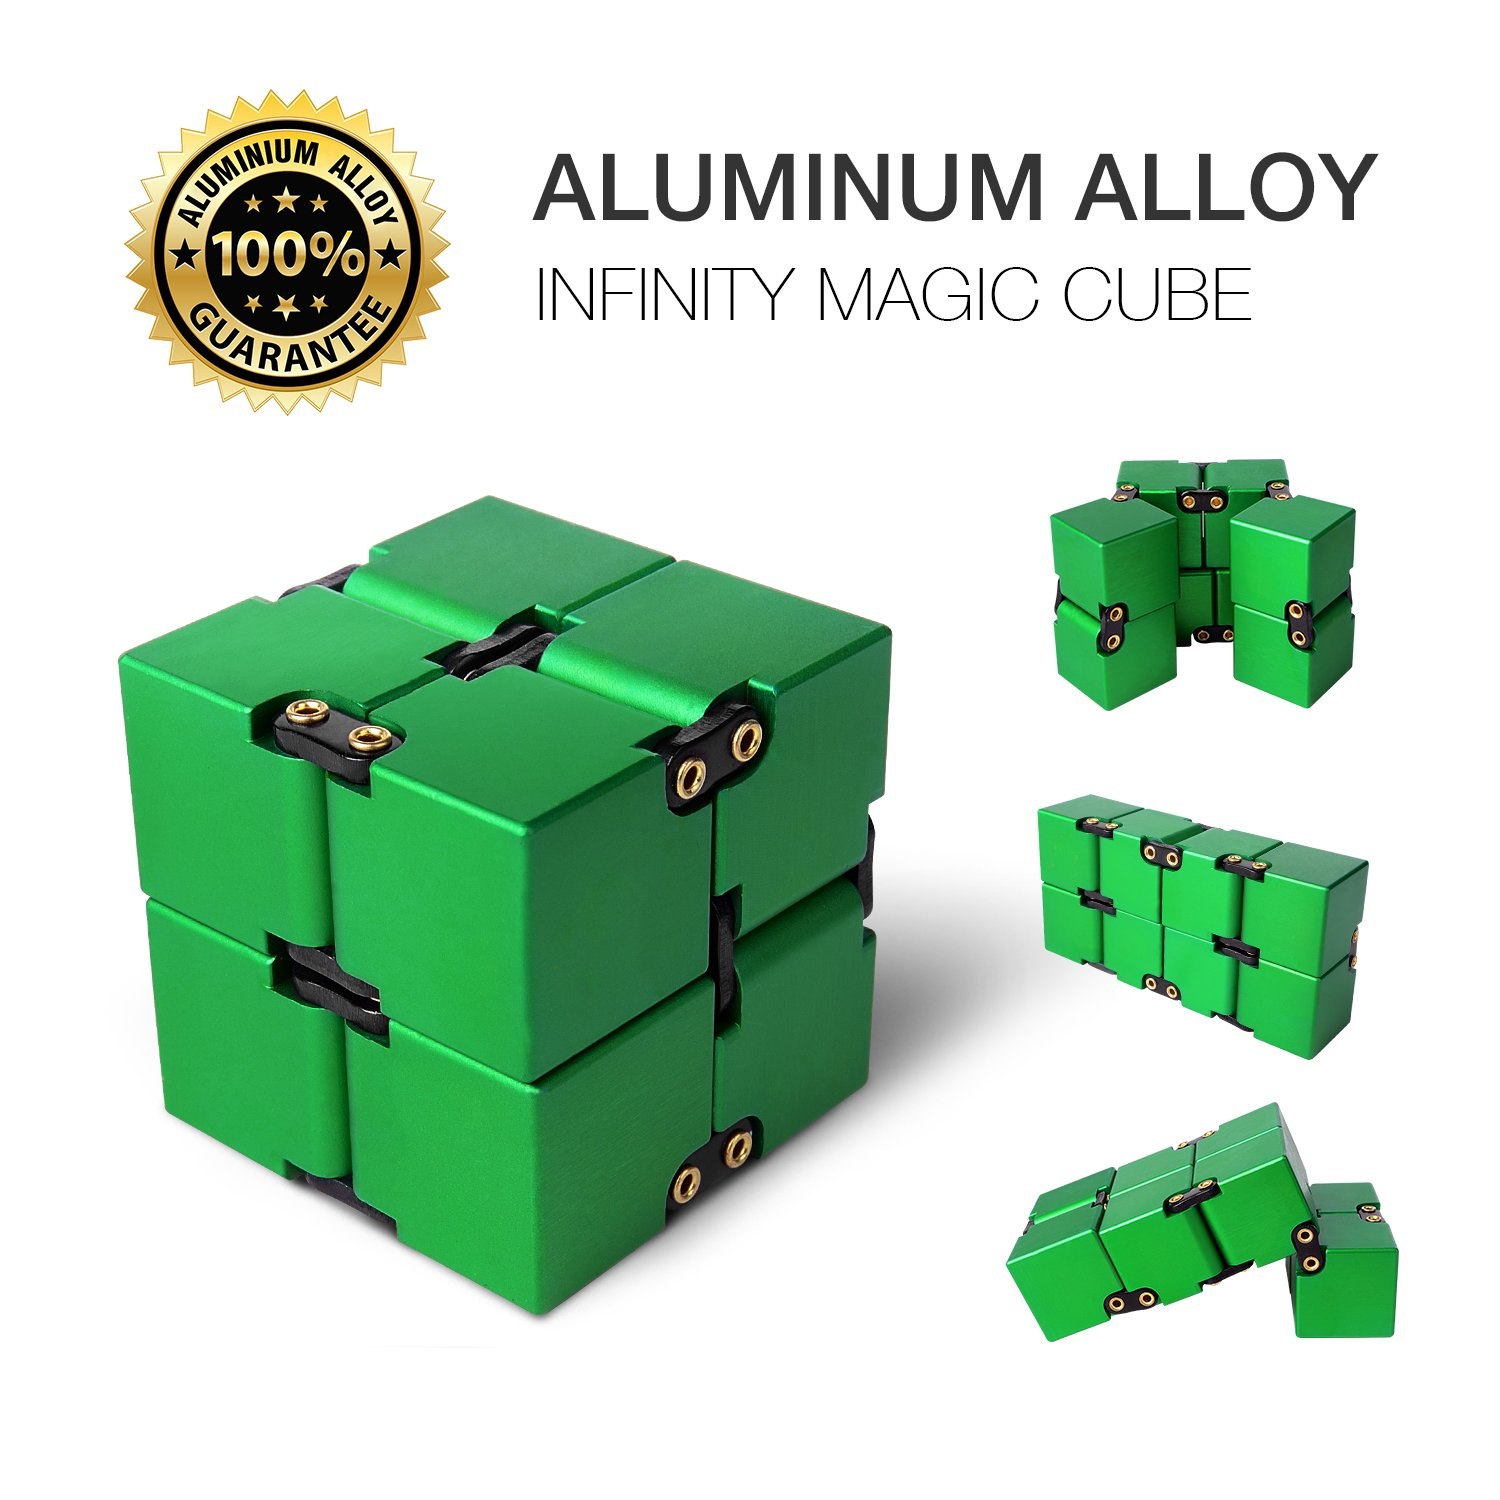 JOYNOTE Aluminium Alloy Infinity Pocket Size Cube Toys Relaxation Office Stress Reducers for ADD, ADHD, Anxiety, Autism Adult & Kids (Green)